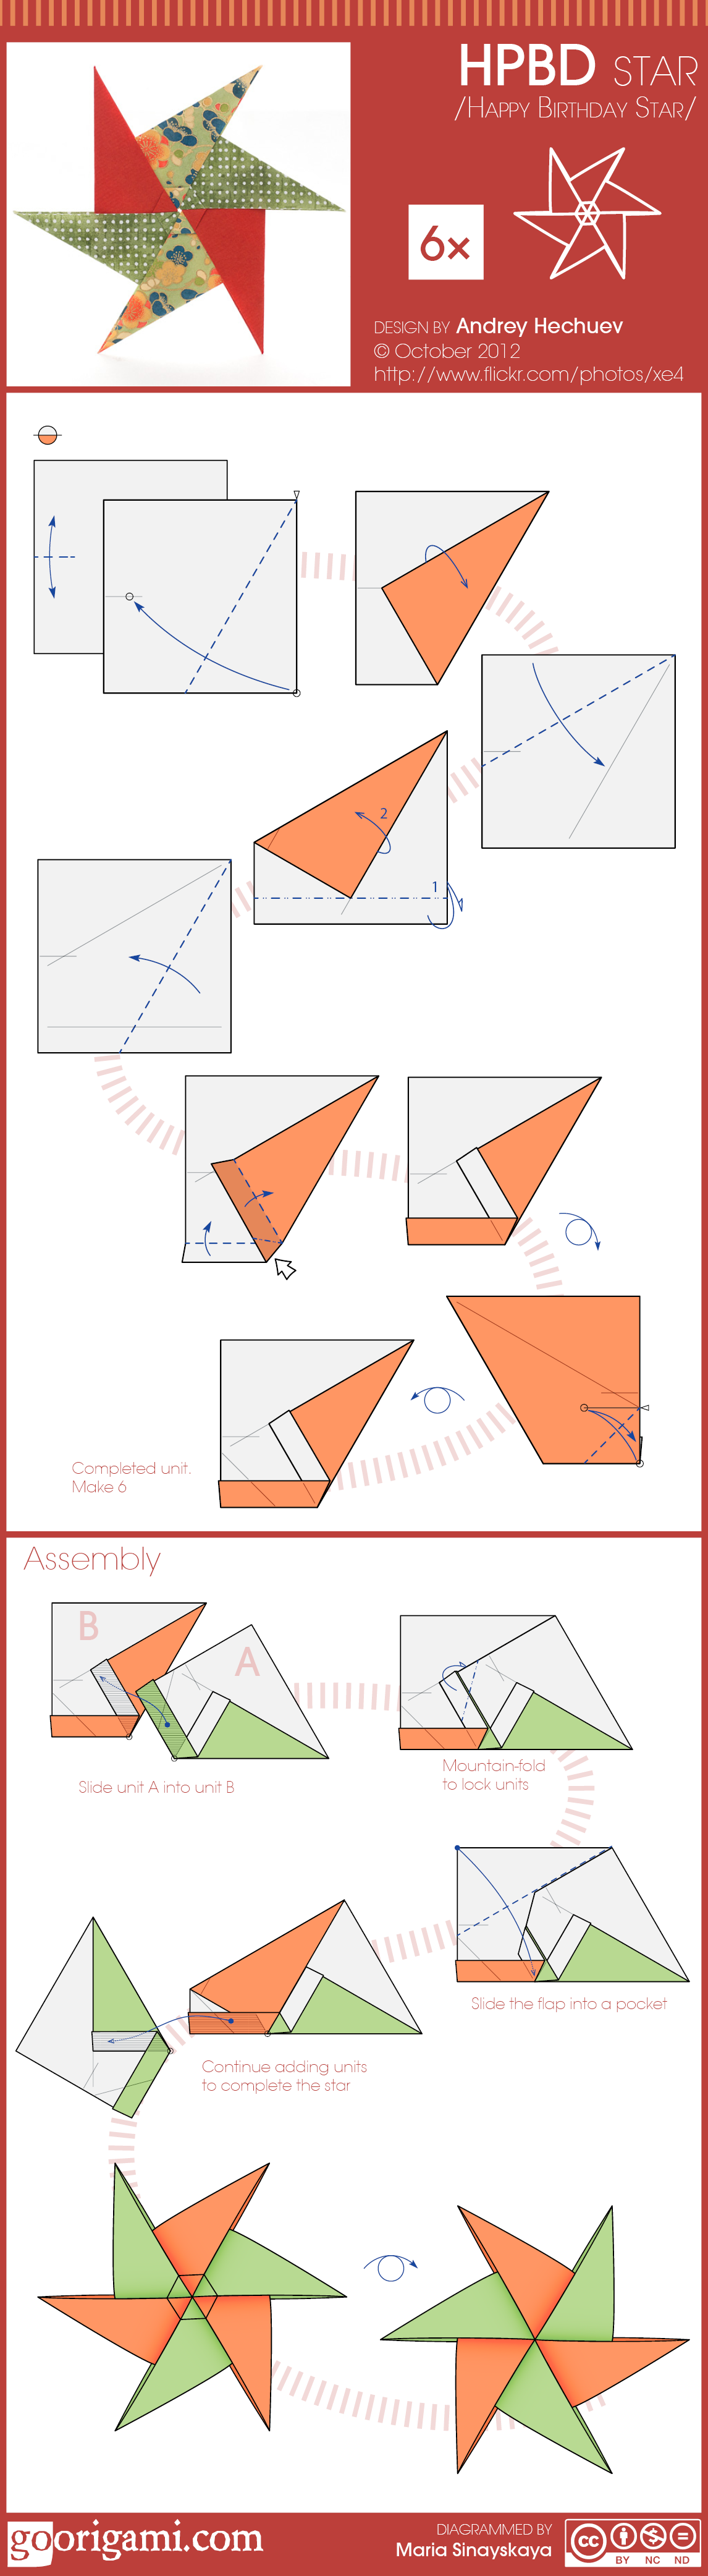 Learn How To Fold 6 Pointed Hpbd Origami Star Design By Andrey Christmas Diagrams Hechuev Diagram Photo And Description Perfect As Decoration